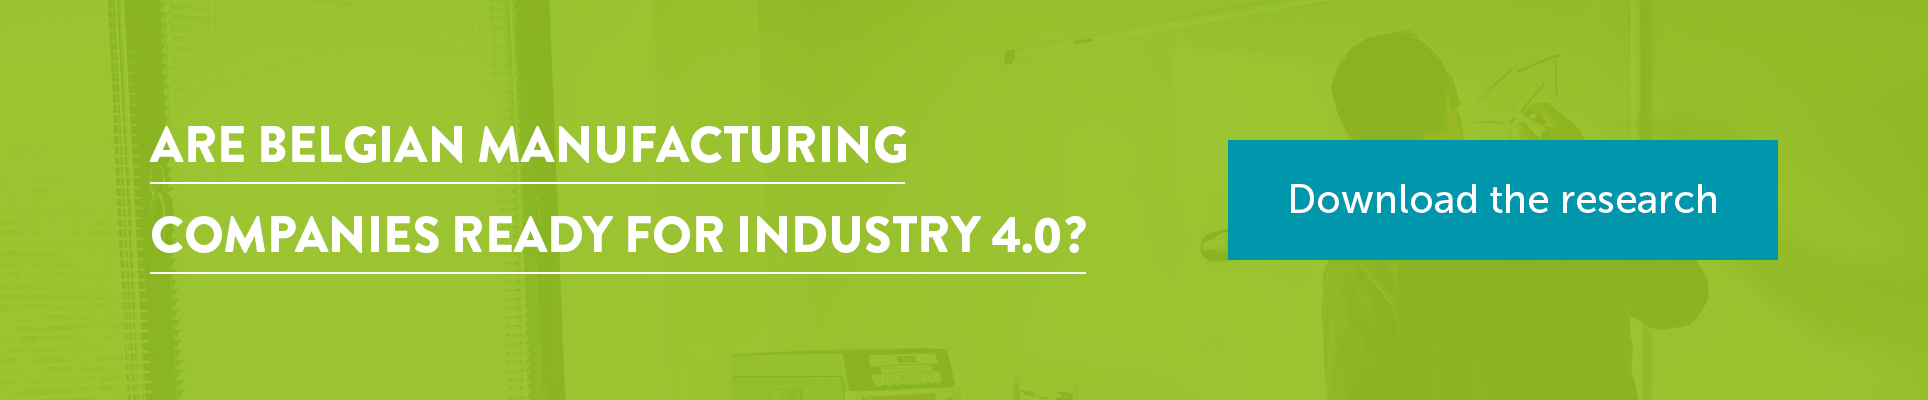 Are Belgian manufacturing companies ready for Industry 4.0?